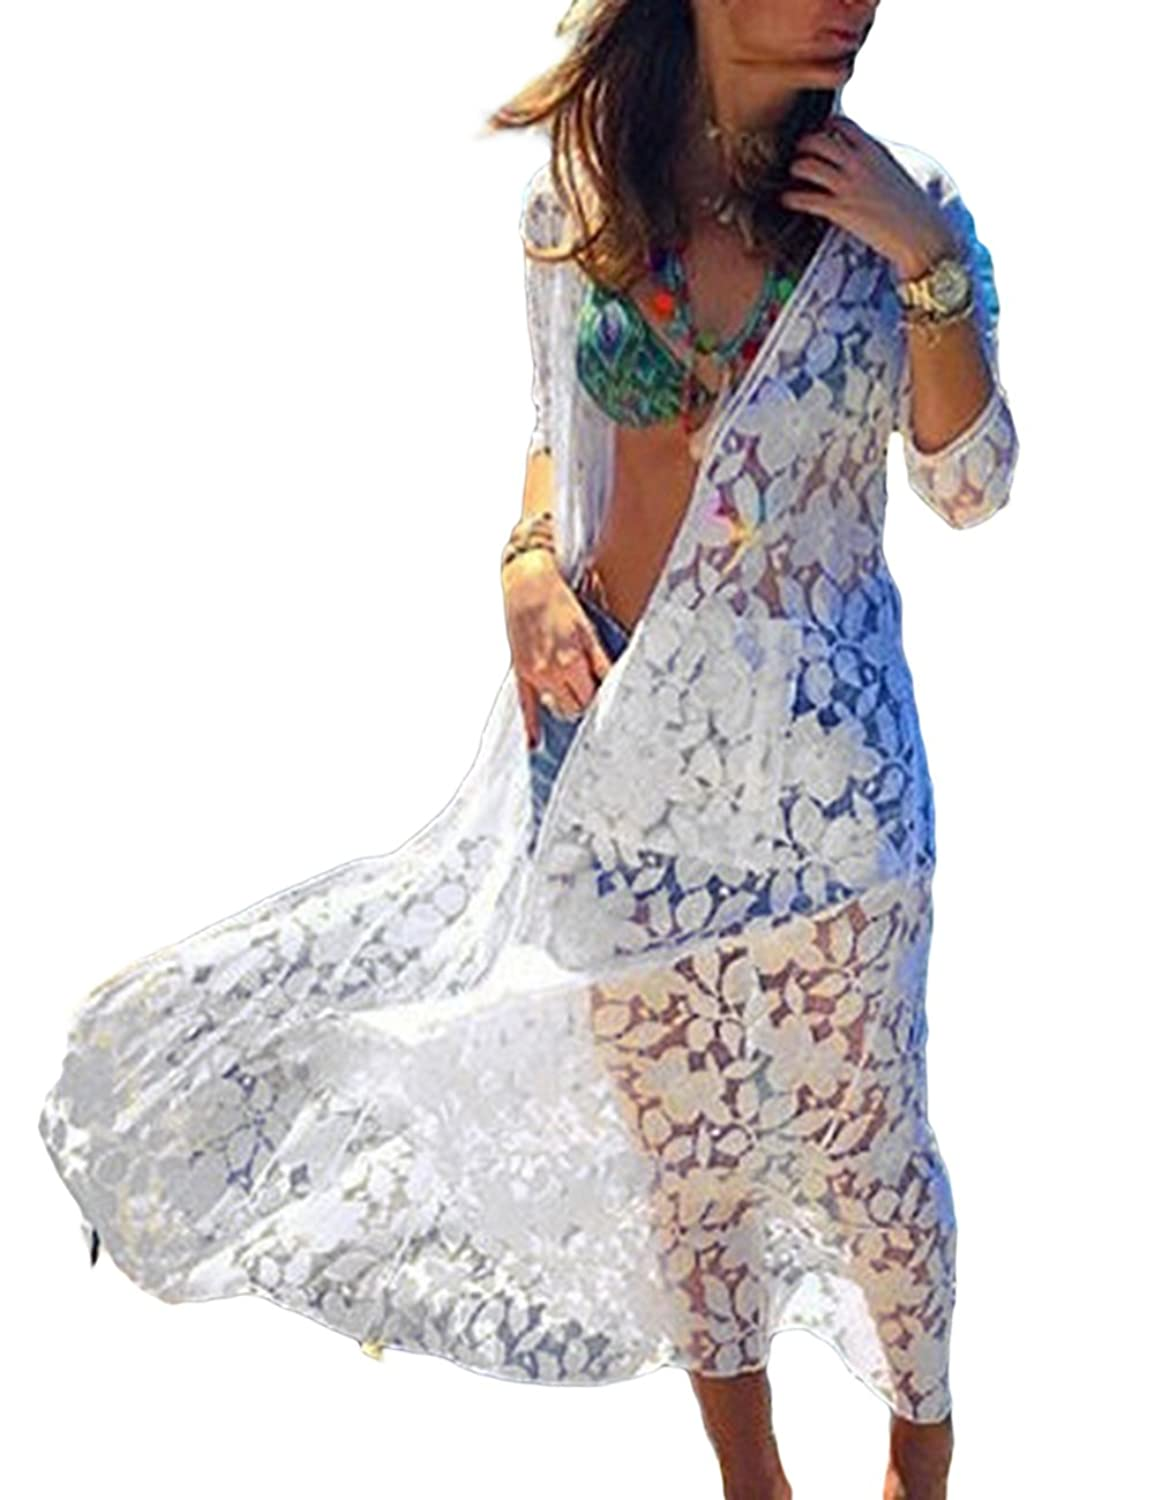 Blouses & Shirts Hearty Ladies Women Beach Cover Up Kaftan Sarong Summer Wear Swimwear Bikini Summer Lace Loose Short Sleeve Casual See-through